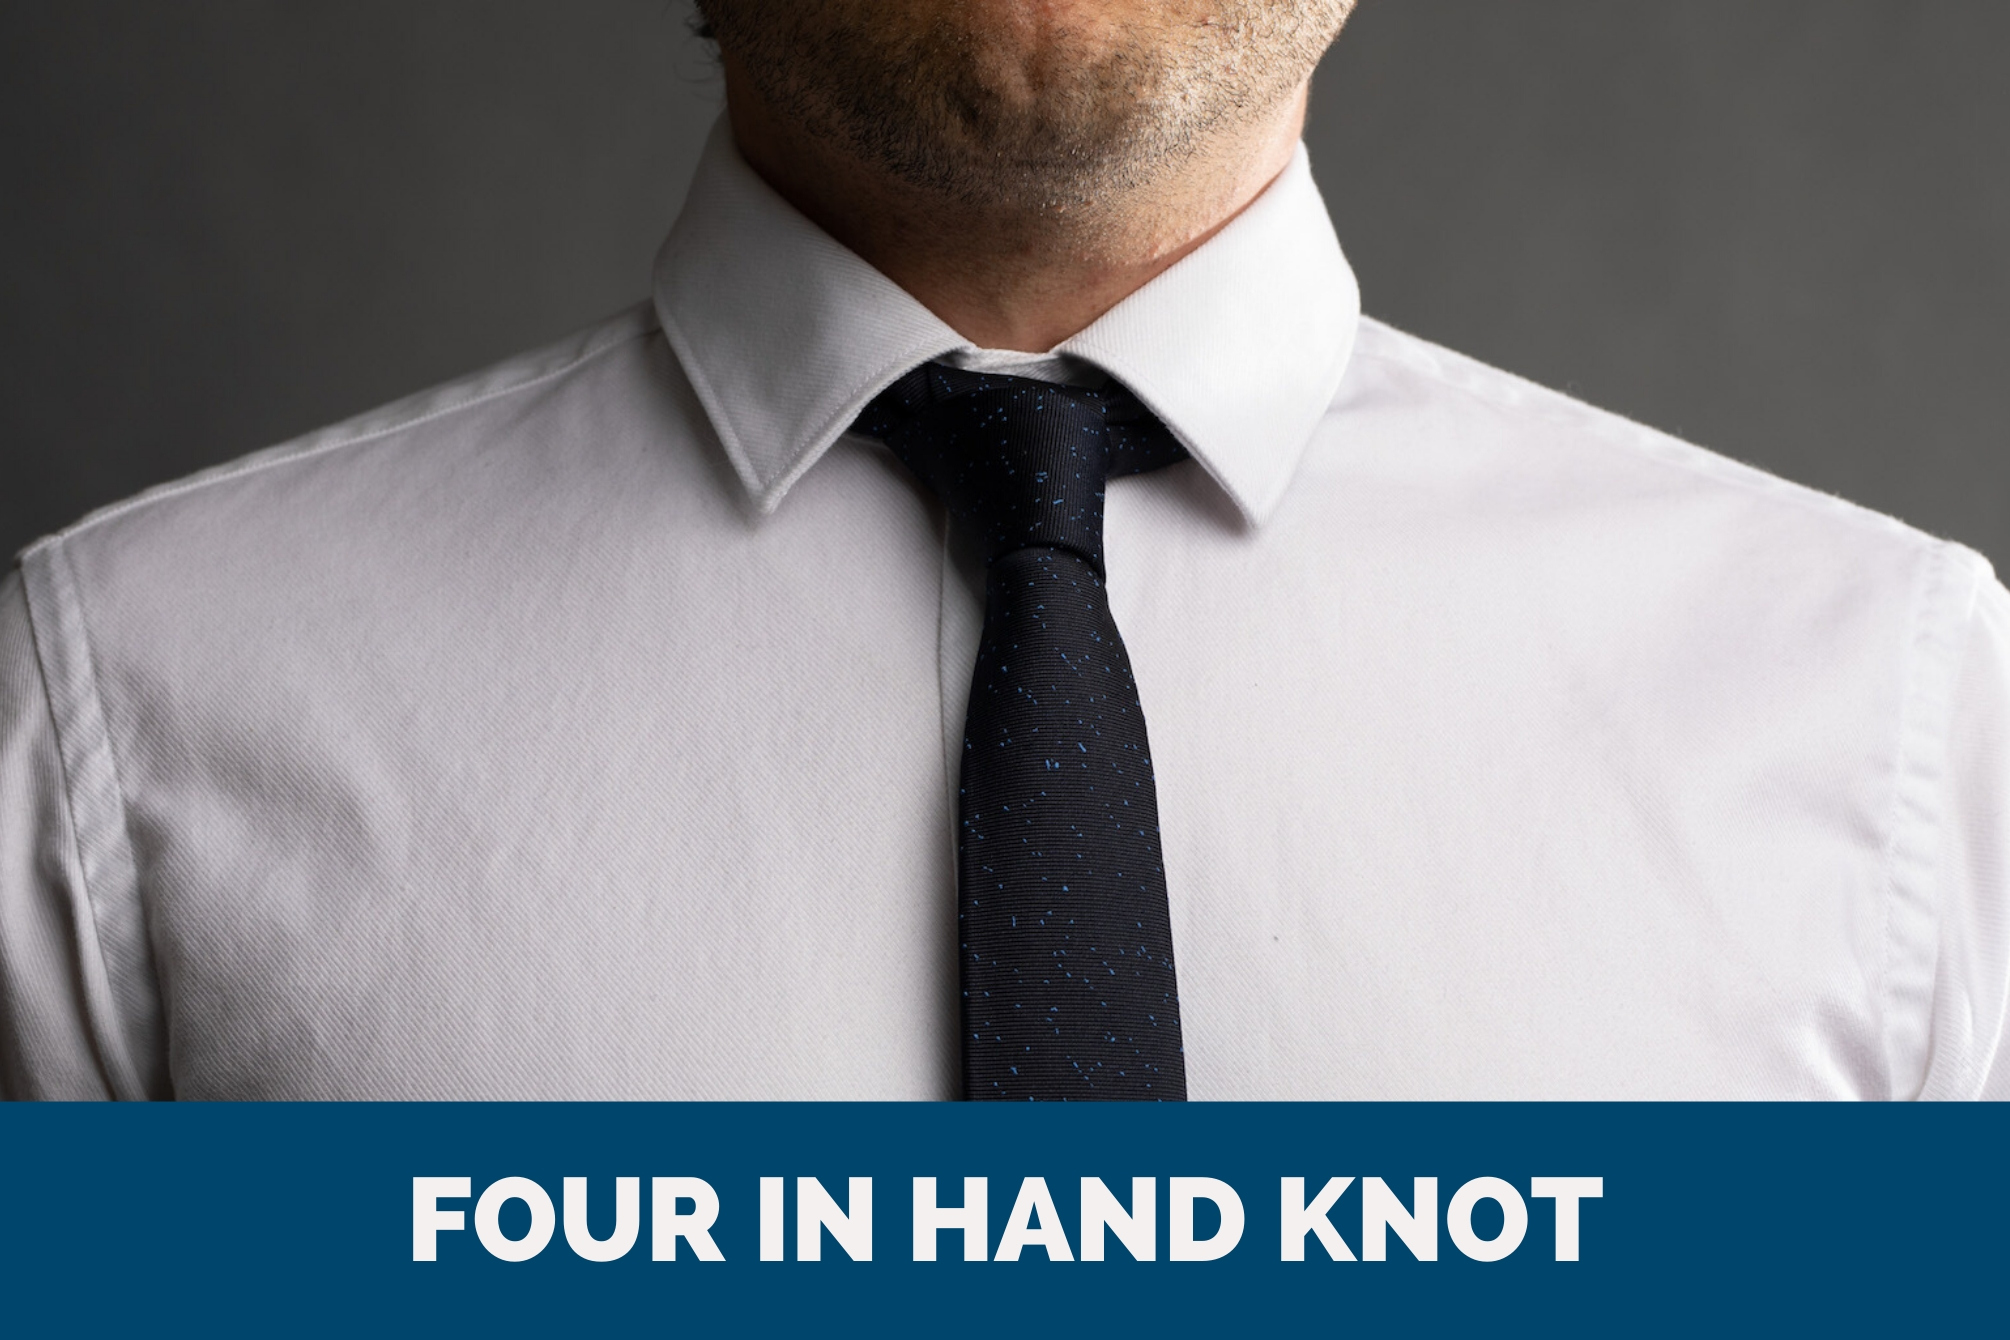 How to Tie a Four in Hand Knot